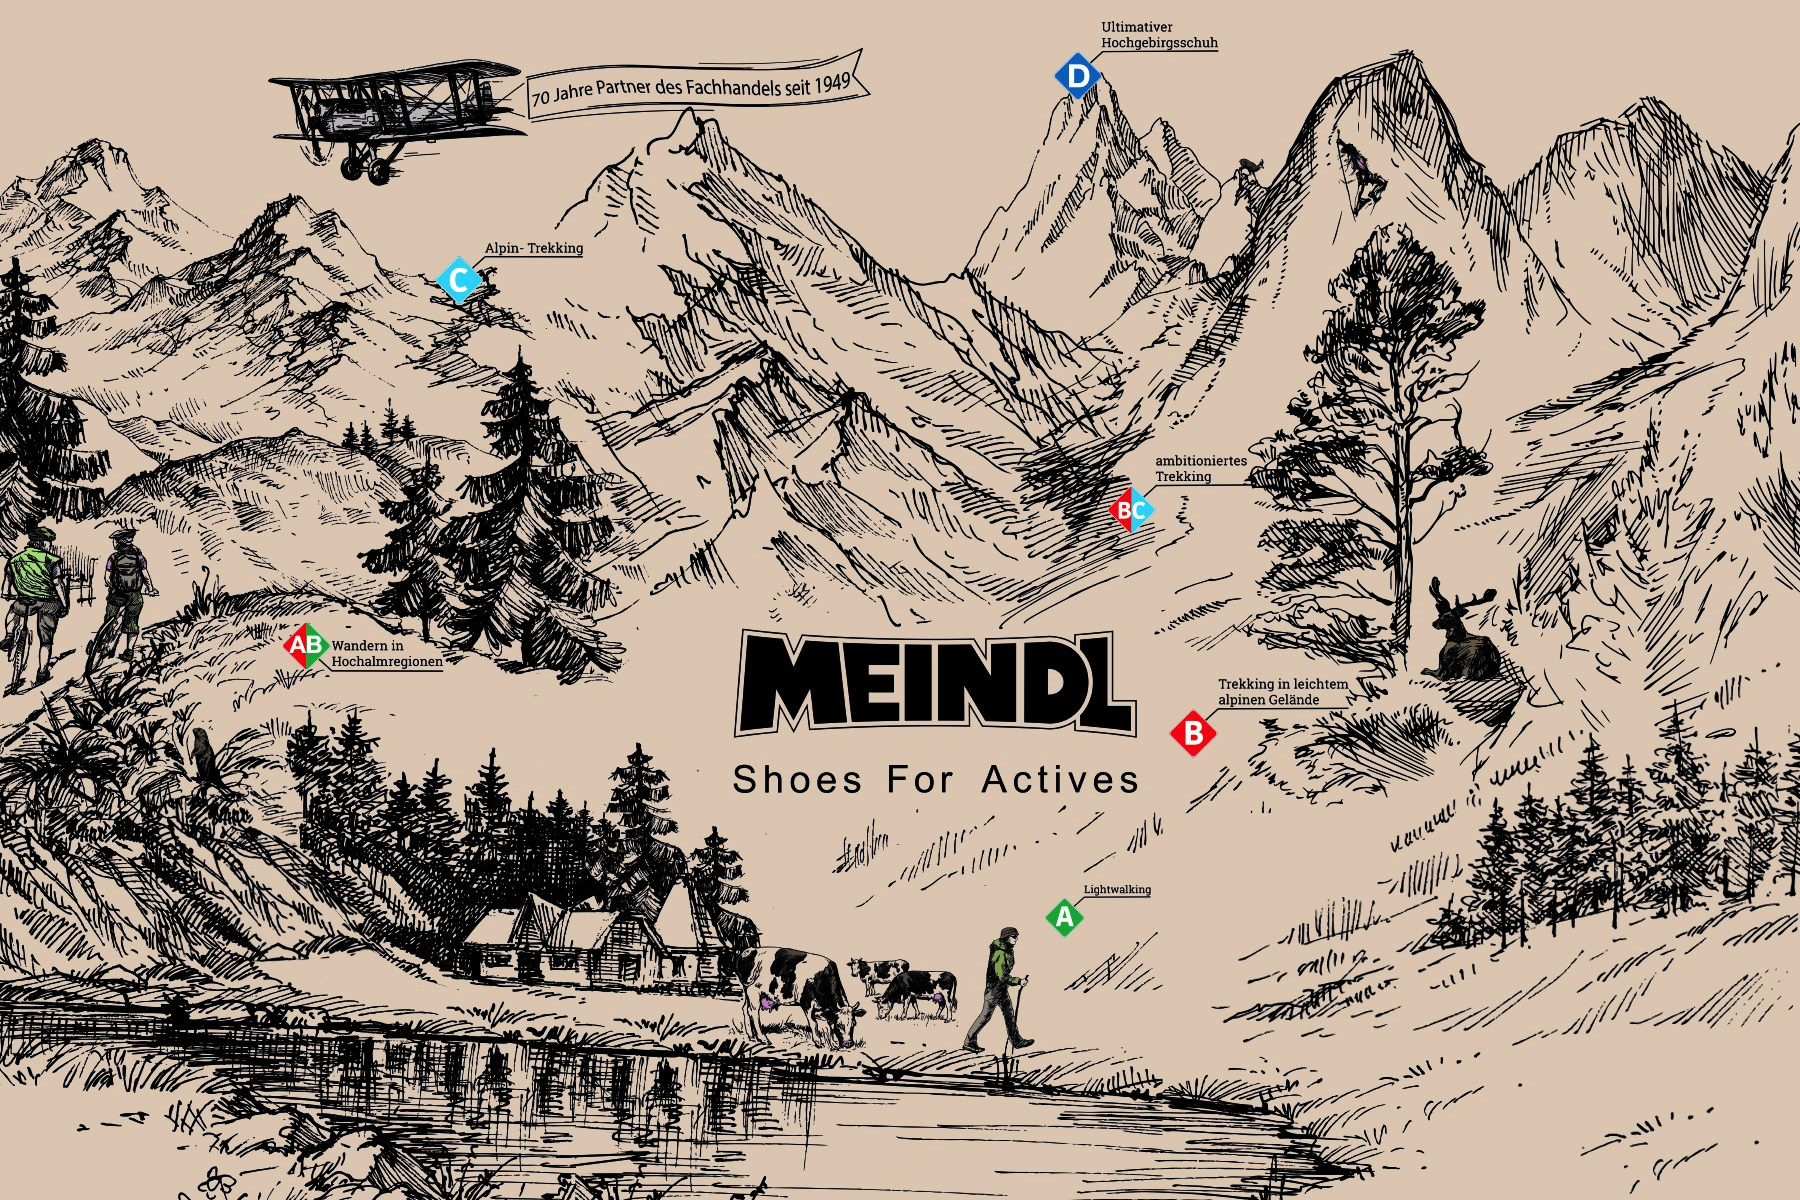 Shoes For Actives Shoes For Shoes For Meindl Meindl Actives Actives Meindl Meindl Shoes w8PkOn0